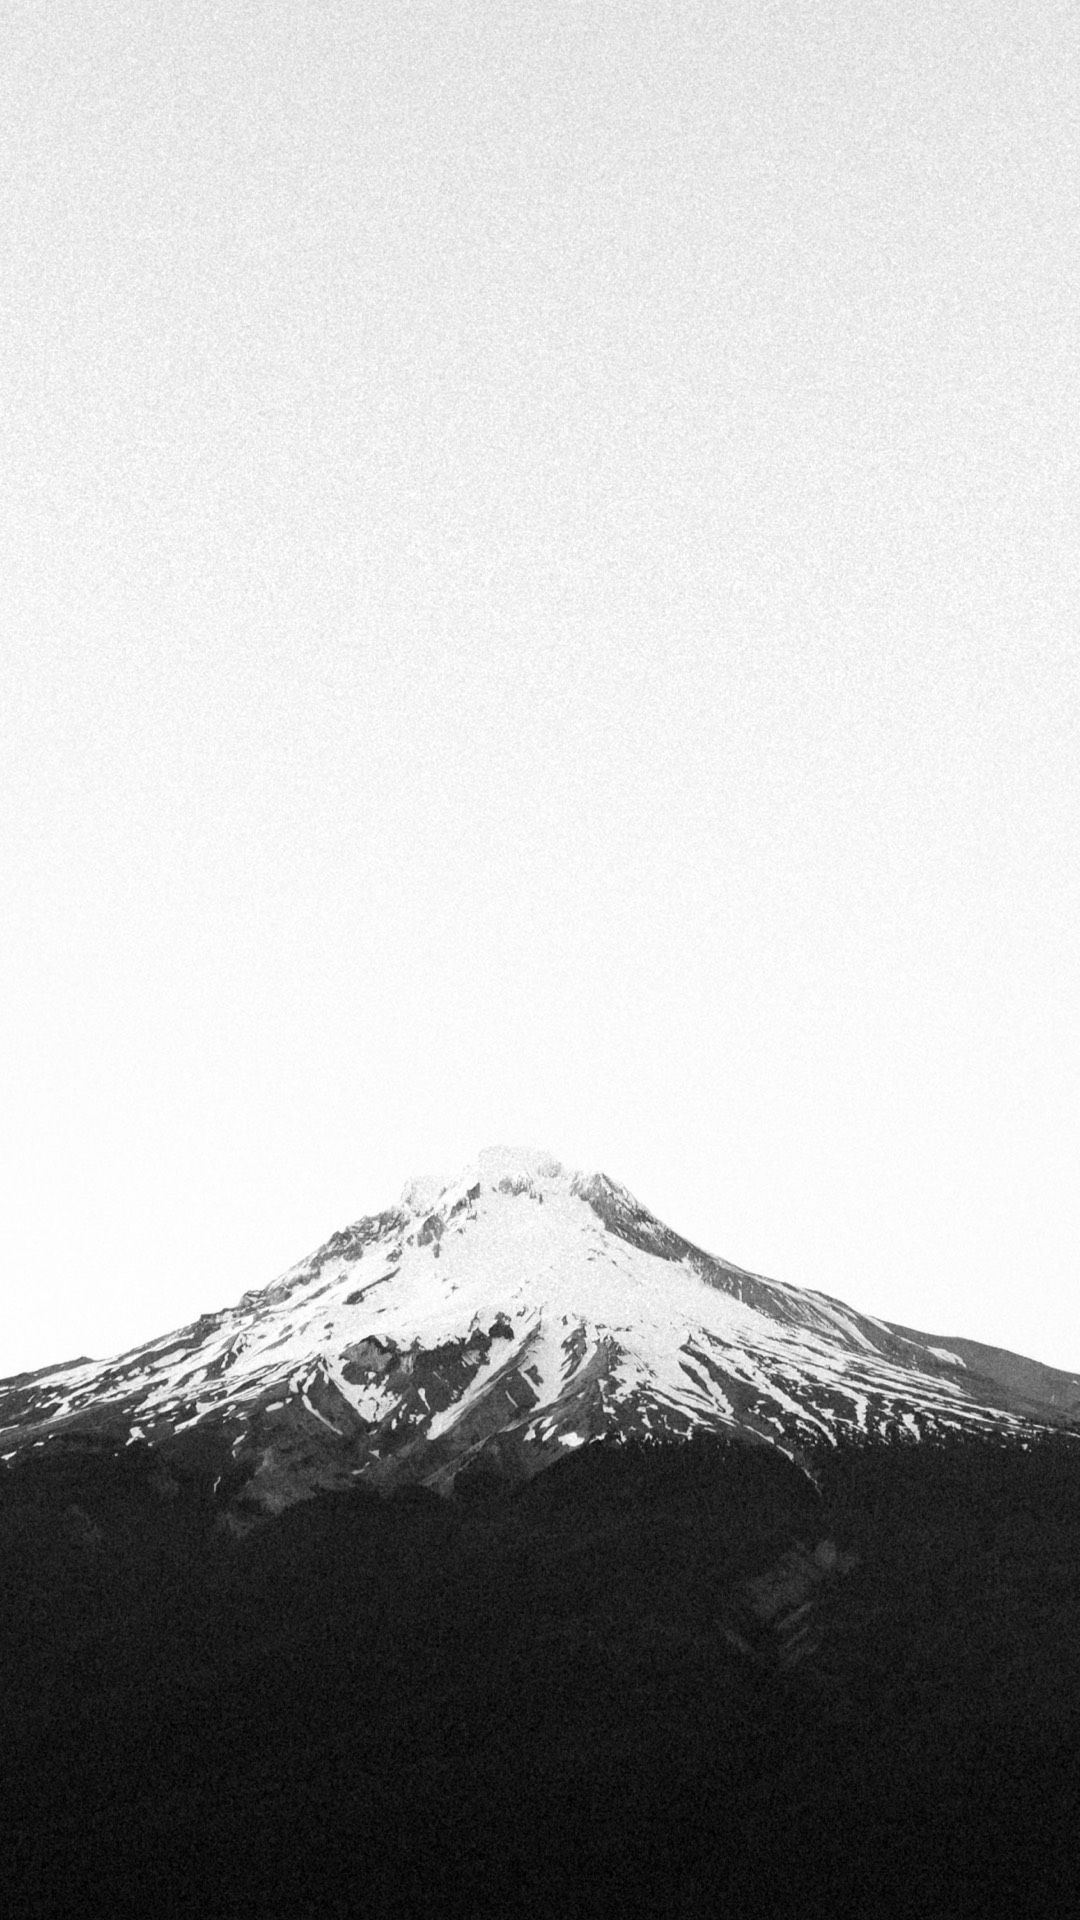 Black And White Mountain 10 Stunning Minimalistic Phone Wallpapers In 2020 Phone Wallpaper Black Phone Wallpaper Iphone Wallpaper Images